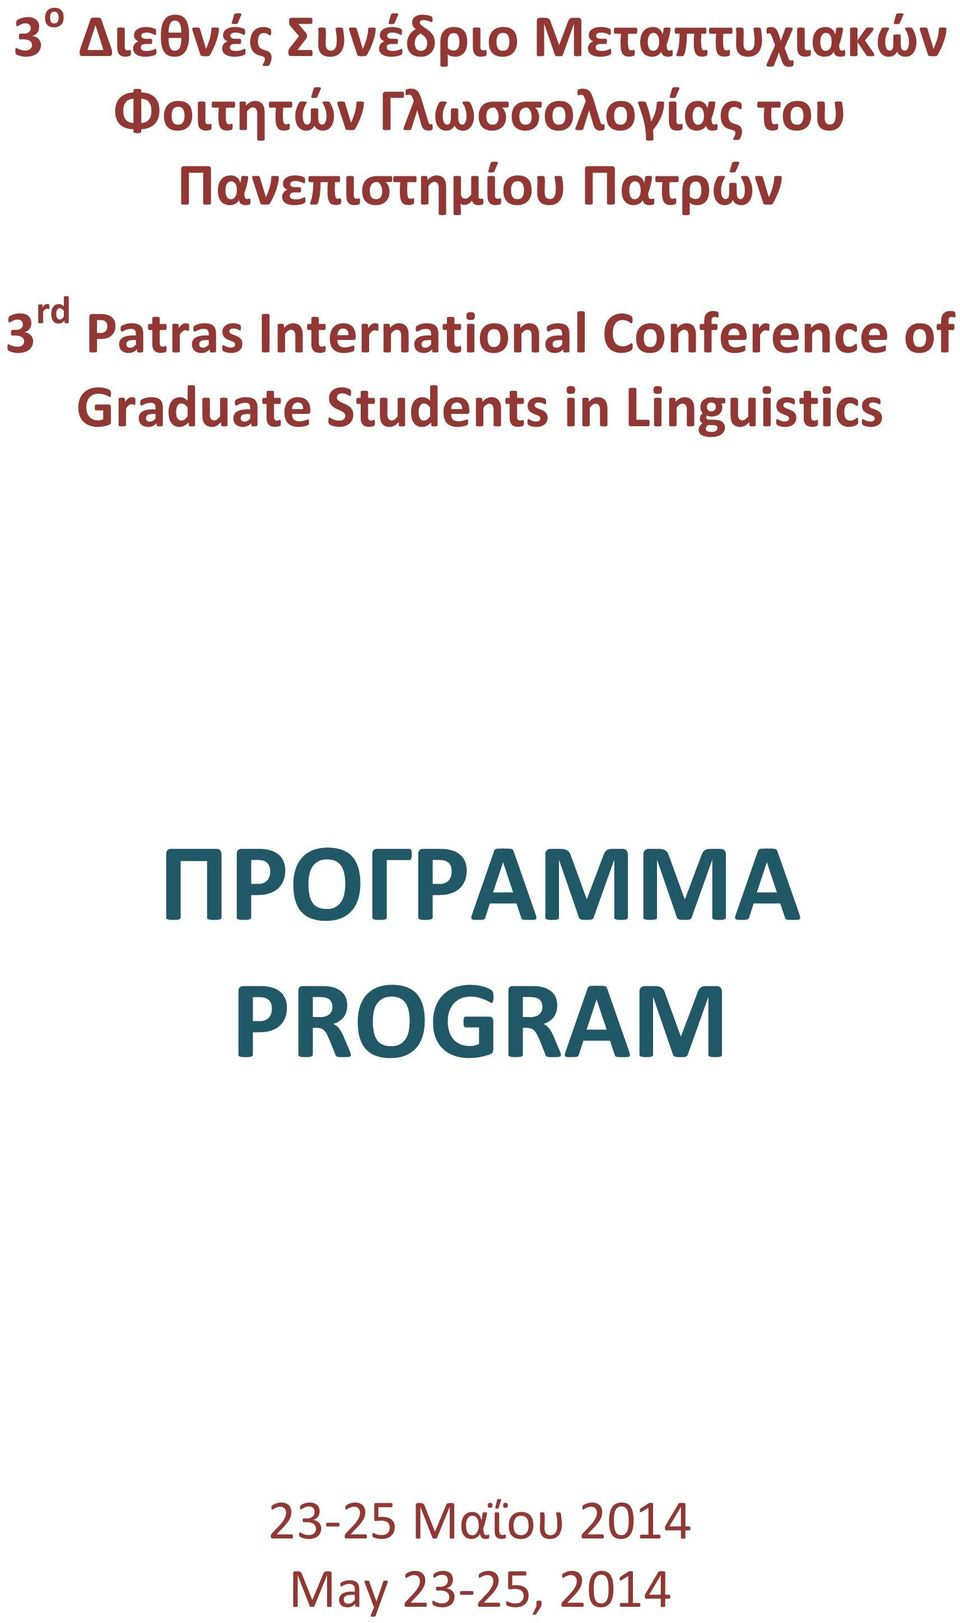 International Conference of Graduate Students in